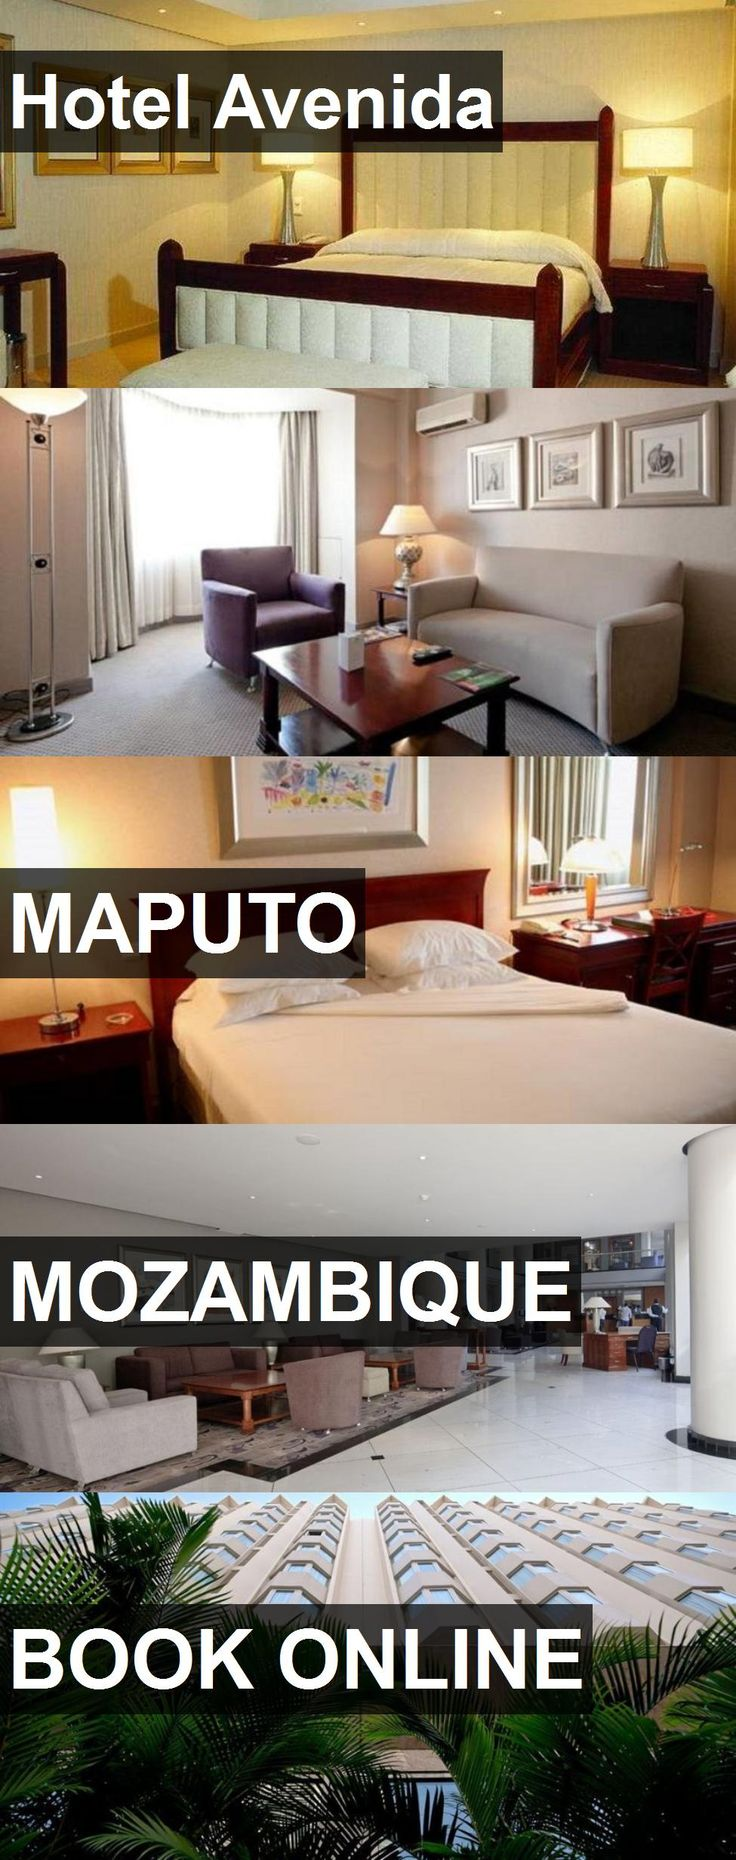 Hotel Avenida in Maputo, Mozambique. For more information, photos, reviews and best prices please follow the link. #Mozambique #Maputo #travel #vacation #hotel